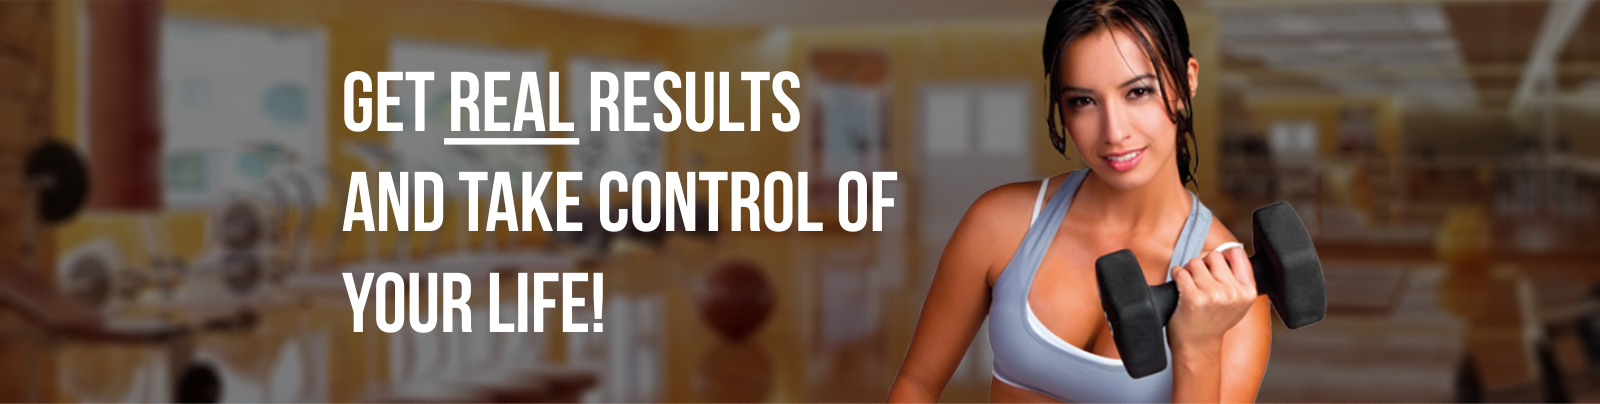 Get Real Results And Take Control Of Your Life